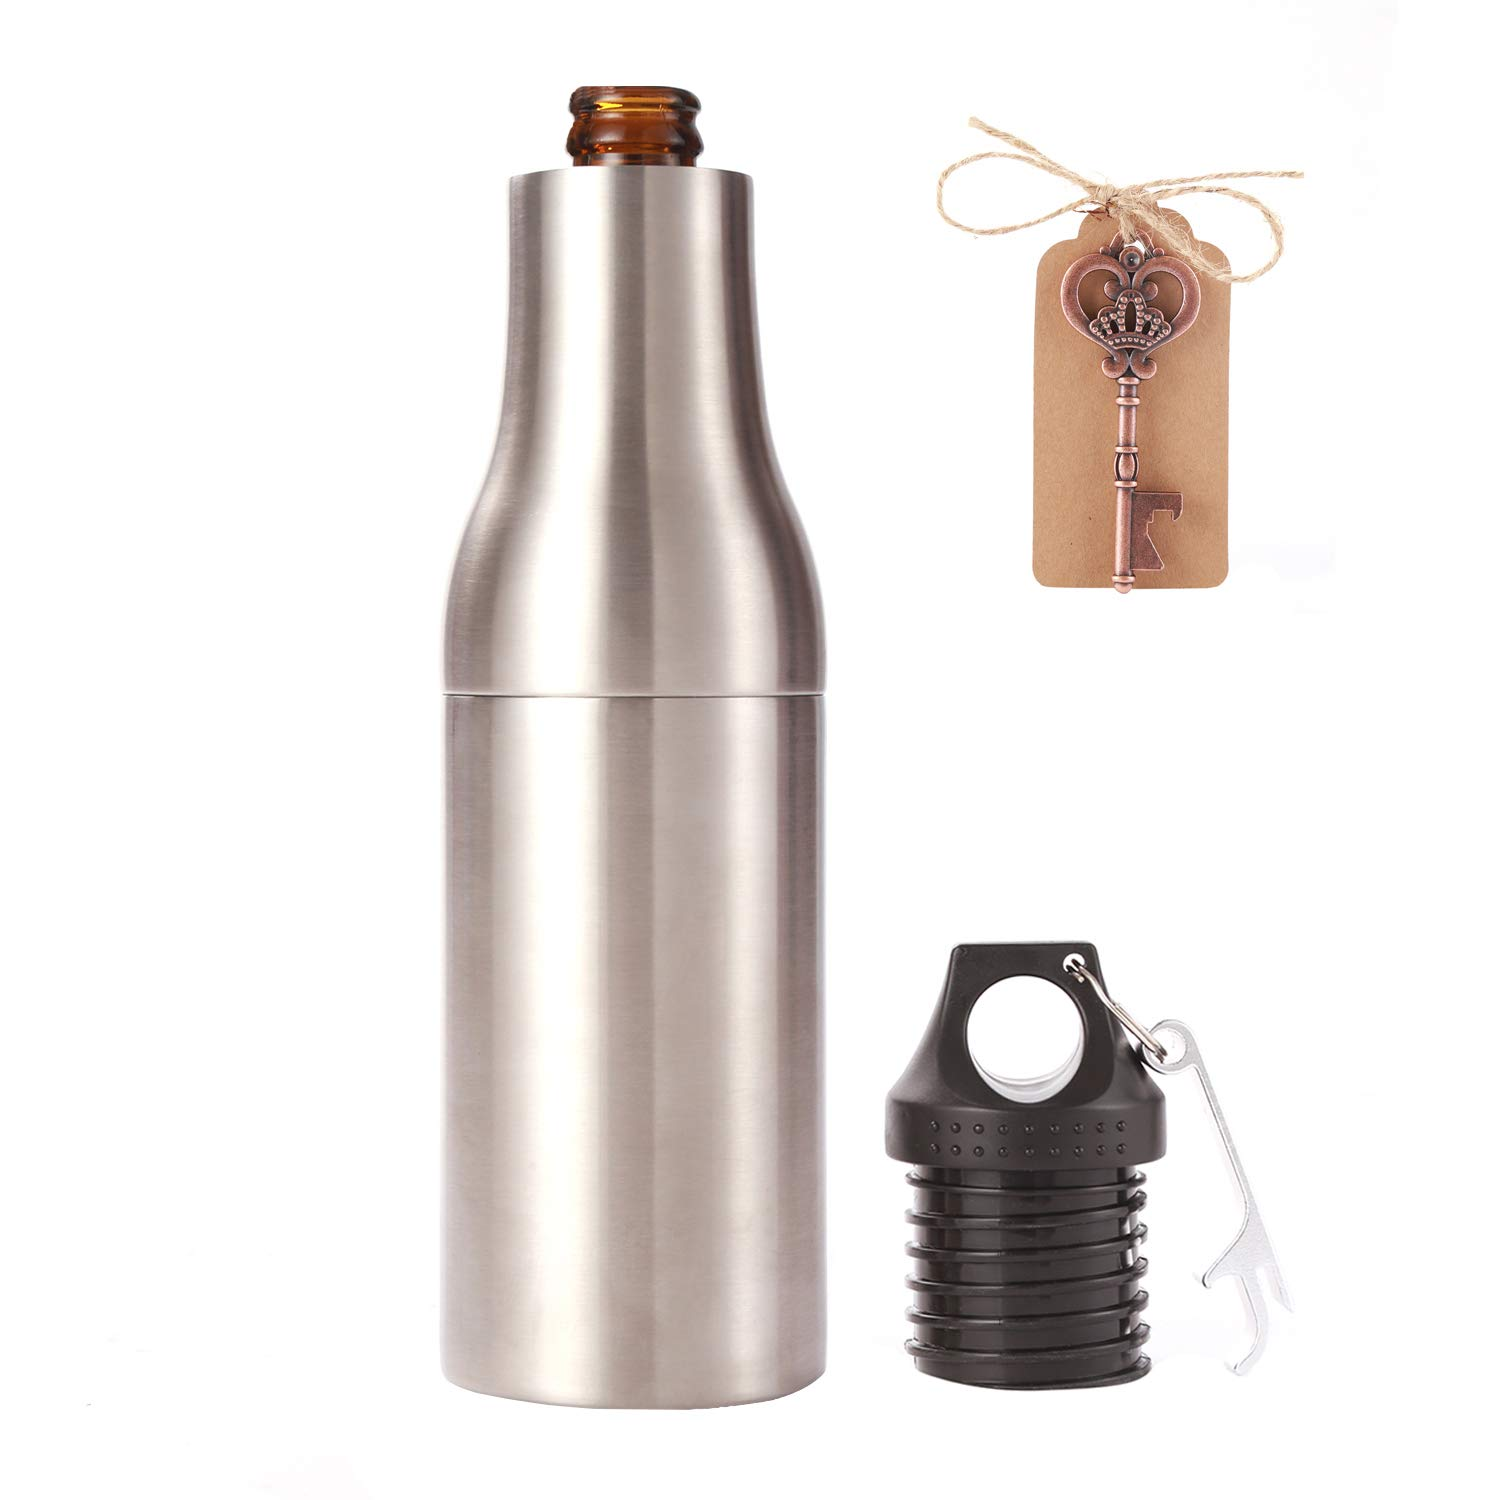 Beer Bottle Cooler Vacuum Insulated Double Walled Stainless Steel Bottle Holder Keep Your Beer Colder, 12 oz